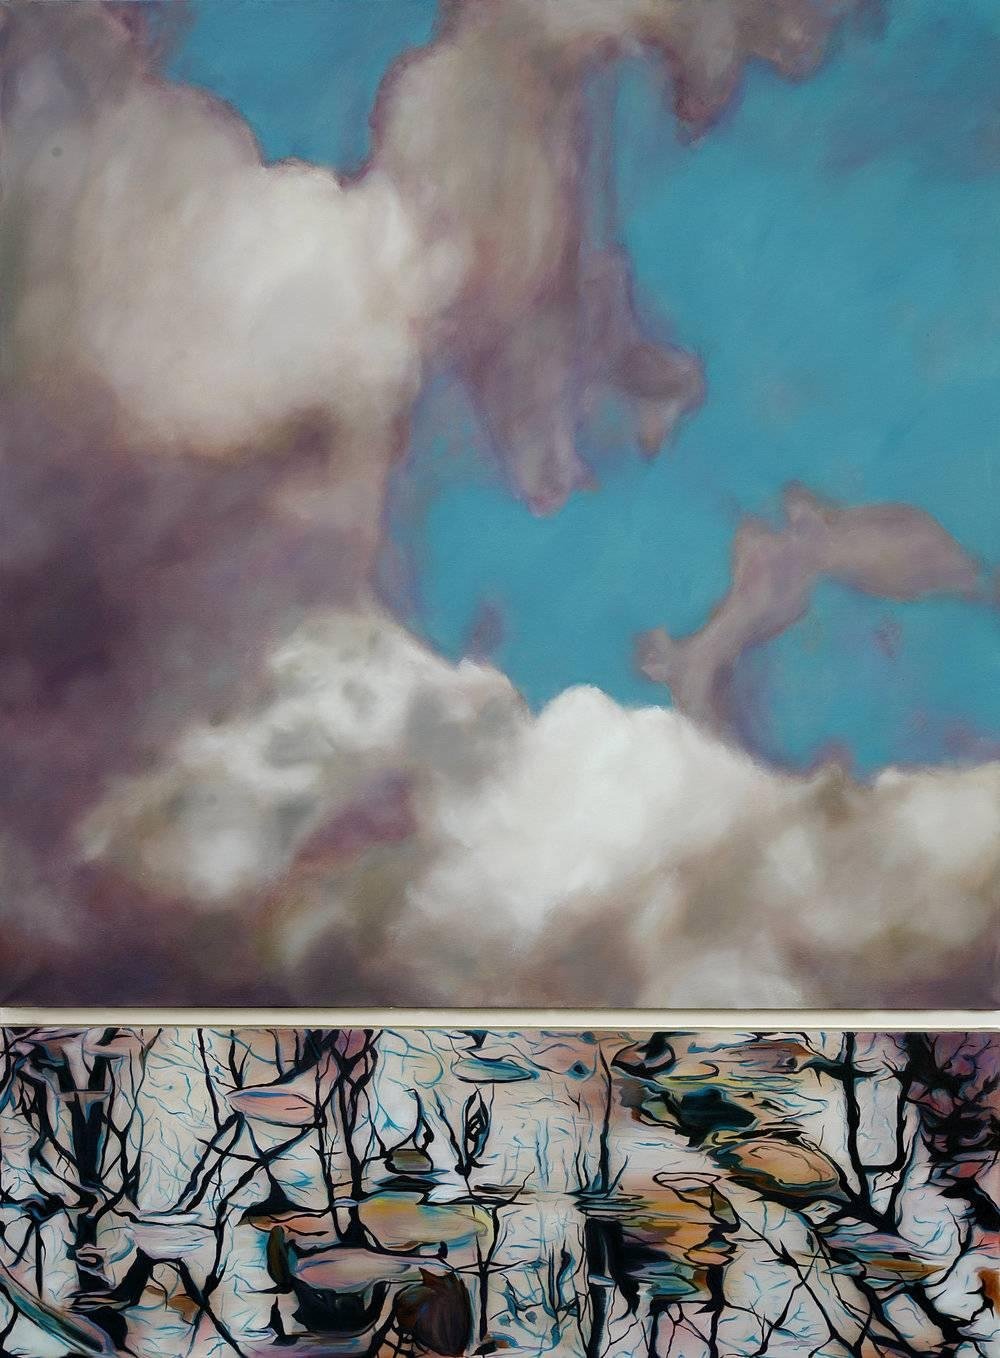 Elevation / diptych - oil on linen